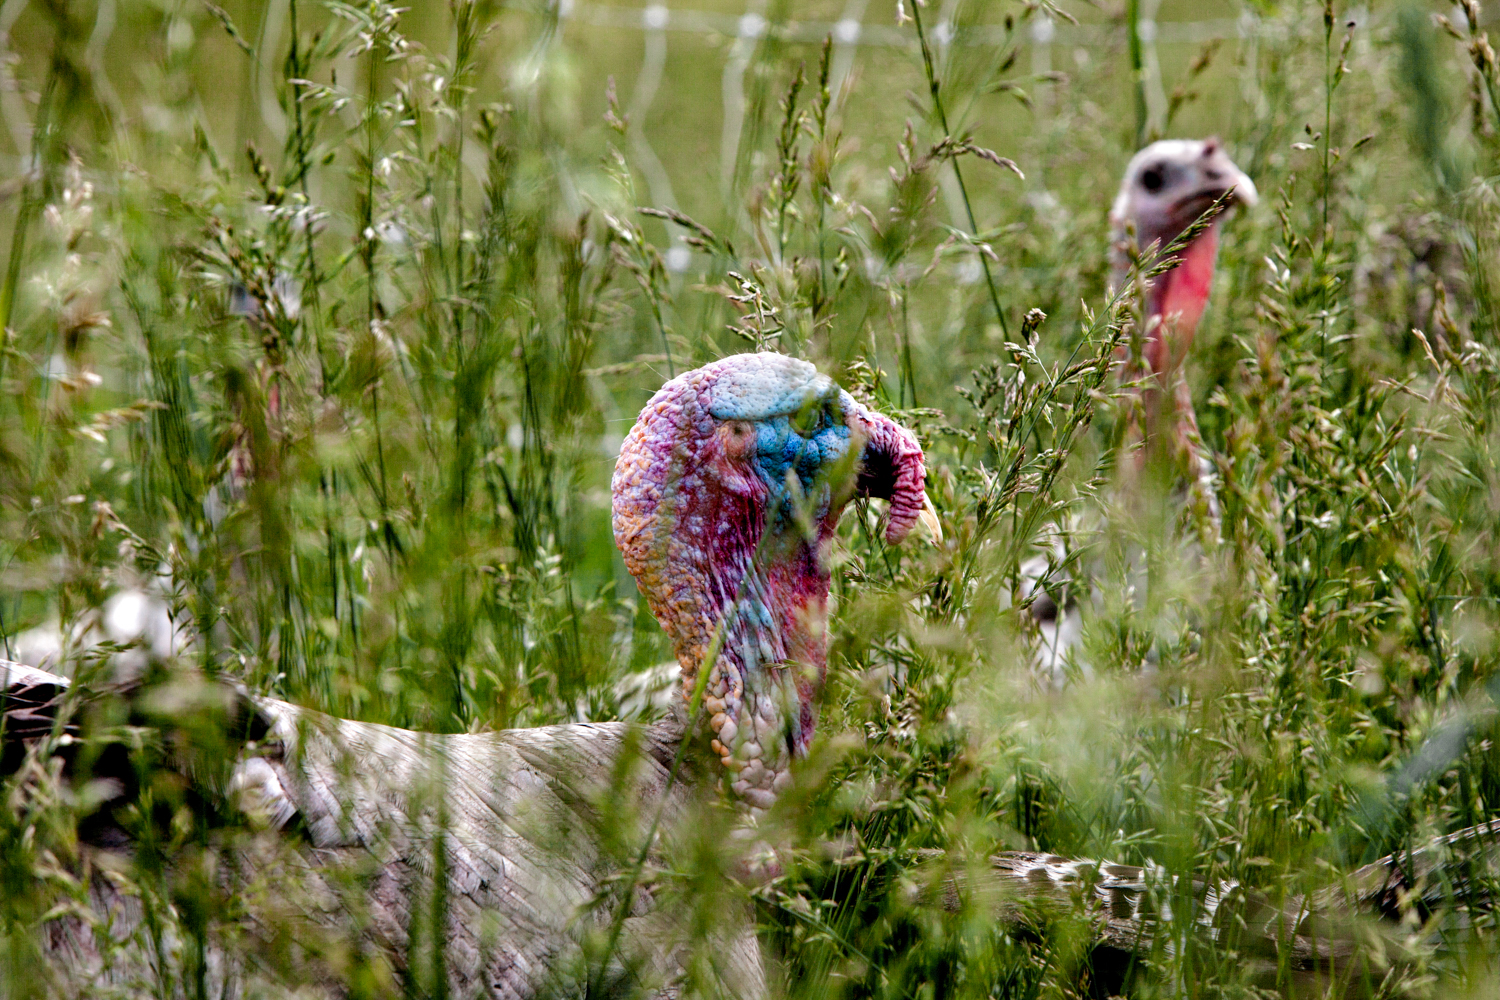 Turkeys in tall grasses at Elmwood Stock Farm. Photograph by Sarah Jane Sanders.